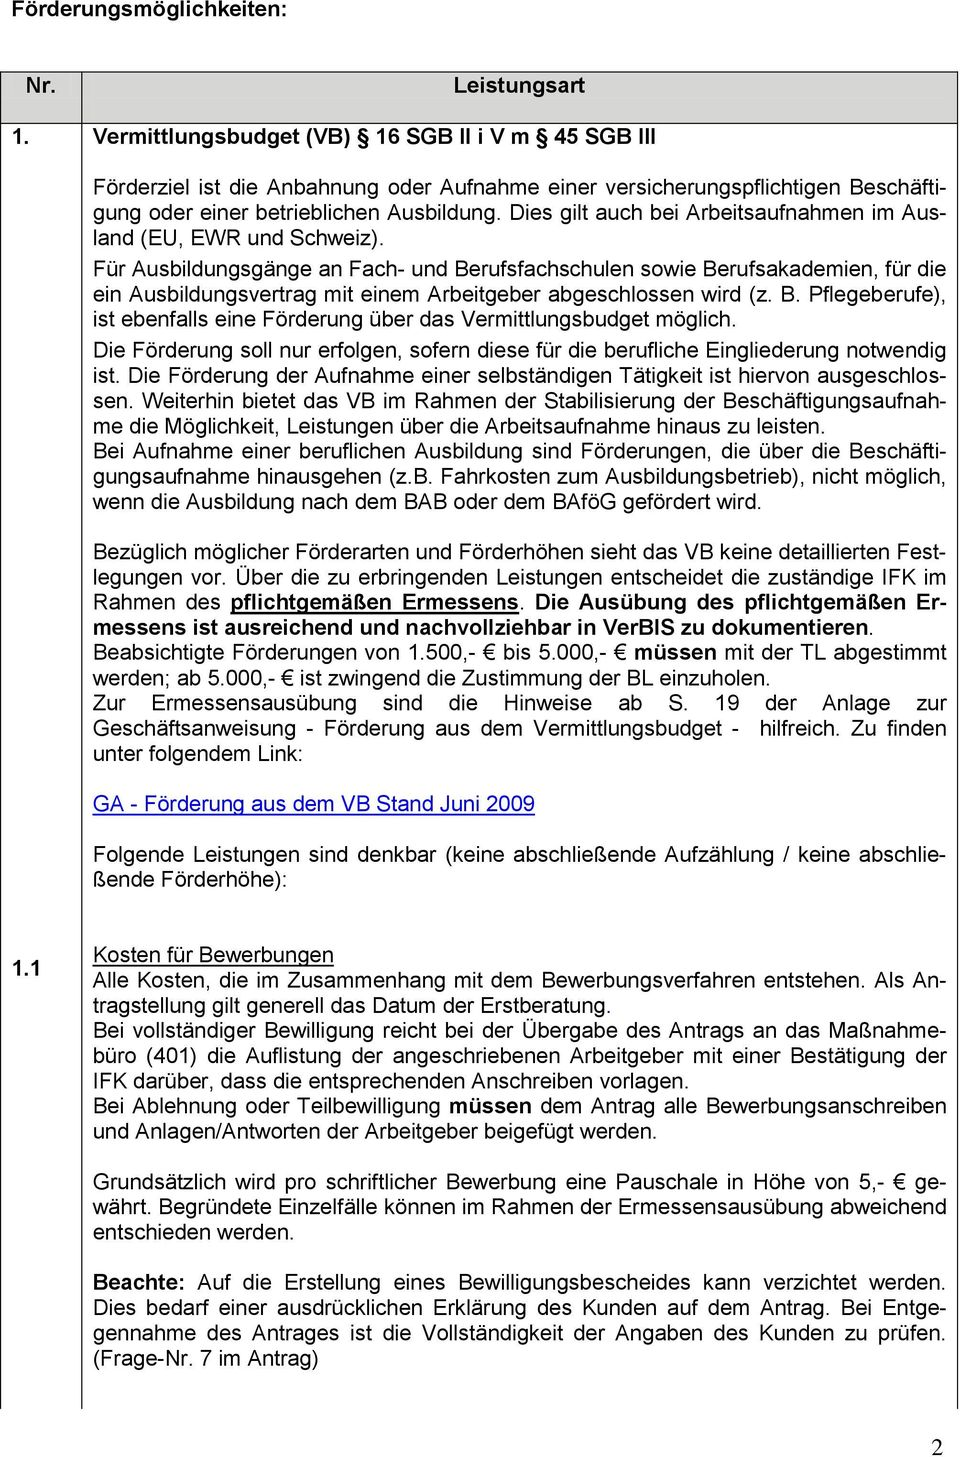 Charmant Vb Vorlagen Galerie - Entry Level Resume Vorlagen Sammlung ...